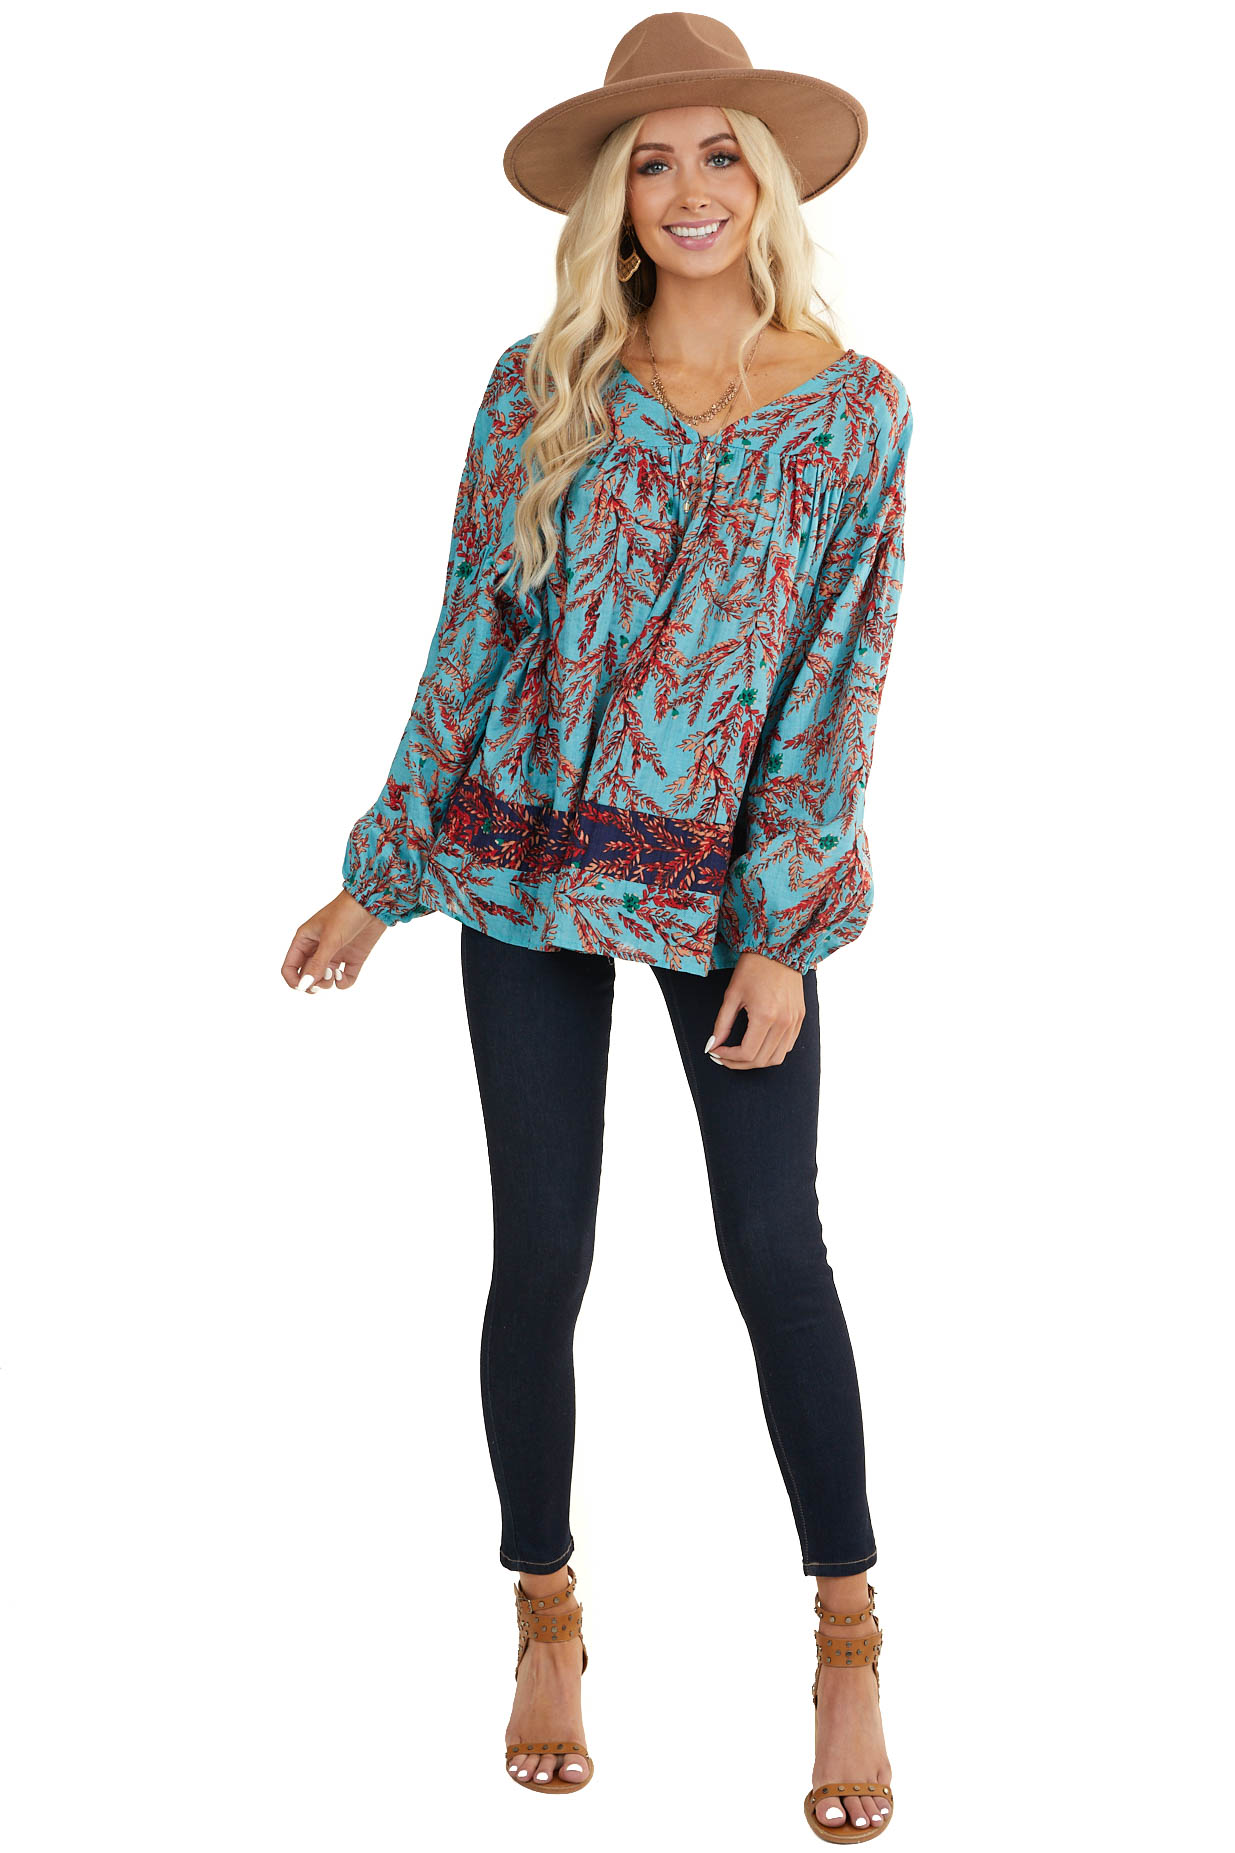 Teal Baby Doll Woven Top with Burgundy Floral Detail